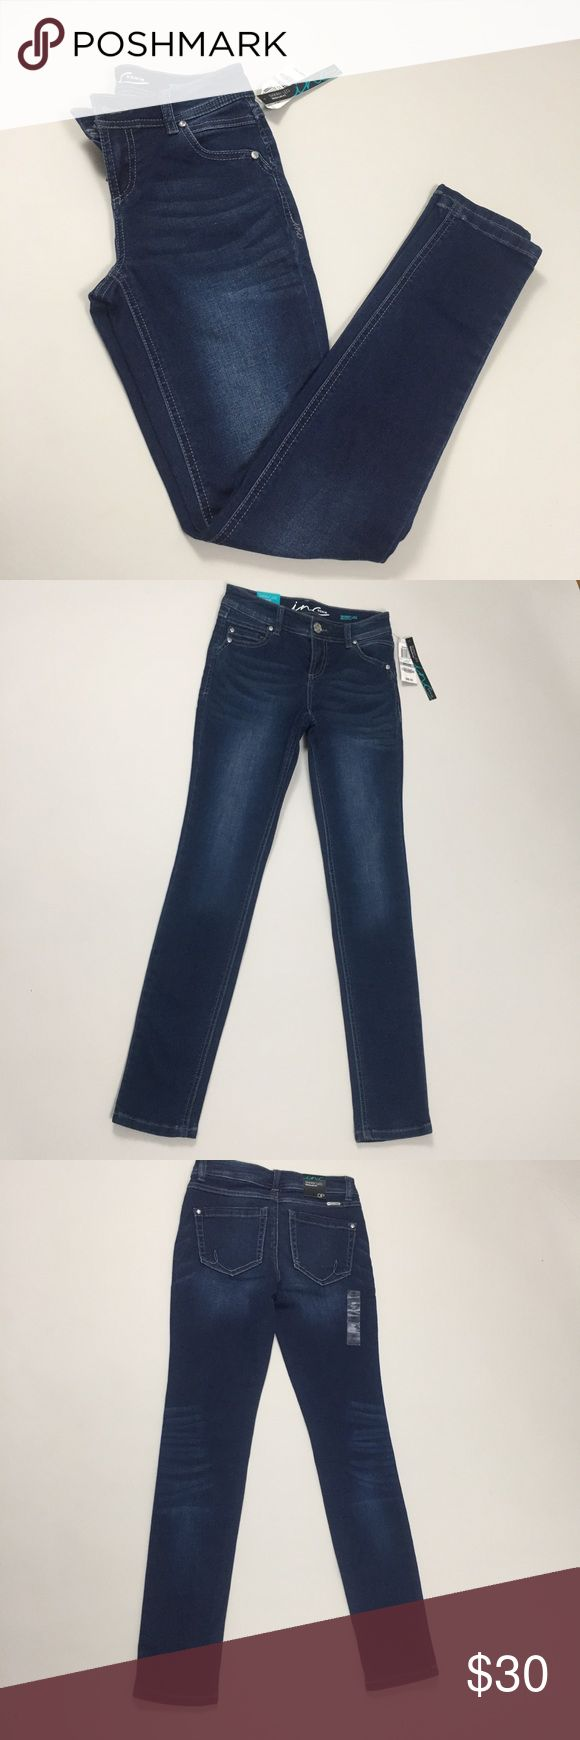 "🆕 INC Skinny Leg Regular Fit Jeans Rose Wash 🔹 New! INC International Concepts Women's Jeans 🔹 Rose Wash 🔹 Skinny Leg 🔹 Regular Fit 🔹 72% Cotton 26% Polyester 2% Spandex 🔹 Waist: 13"" 🔹 Length: 37.5"" 🔹 Inseam: 28.5"" 🔹 Measured Flat ⭐️⭐️⭐️ Enjoy 20% Off Bundles! INC International Concepts Jeans Skinny"